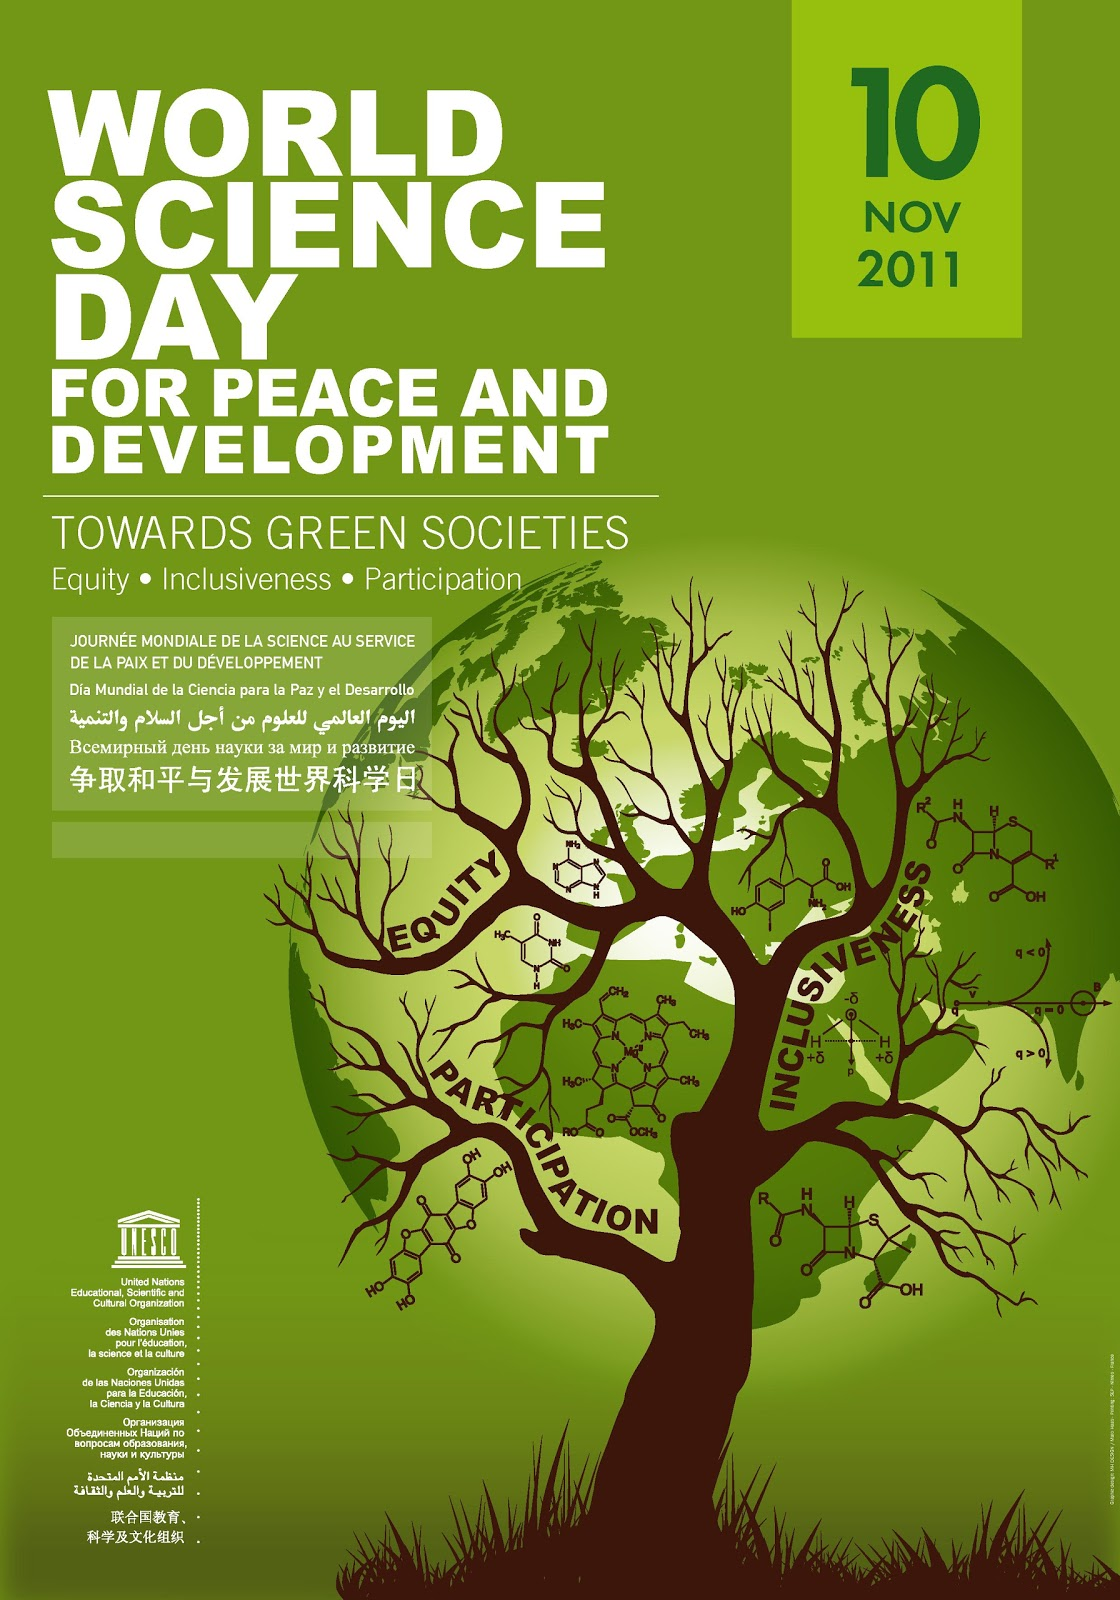 World Science Day 2011 http://developmentupdates.blogspot.com/2011/11/science-towards-green-societies-equity.html